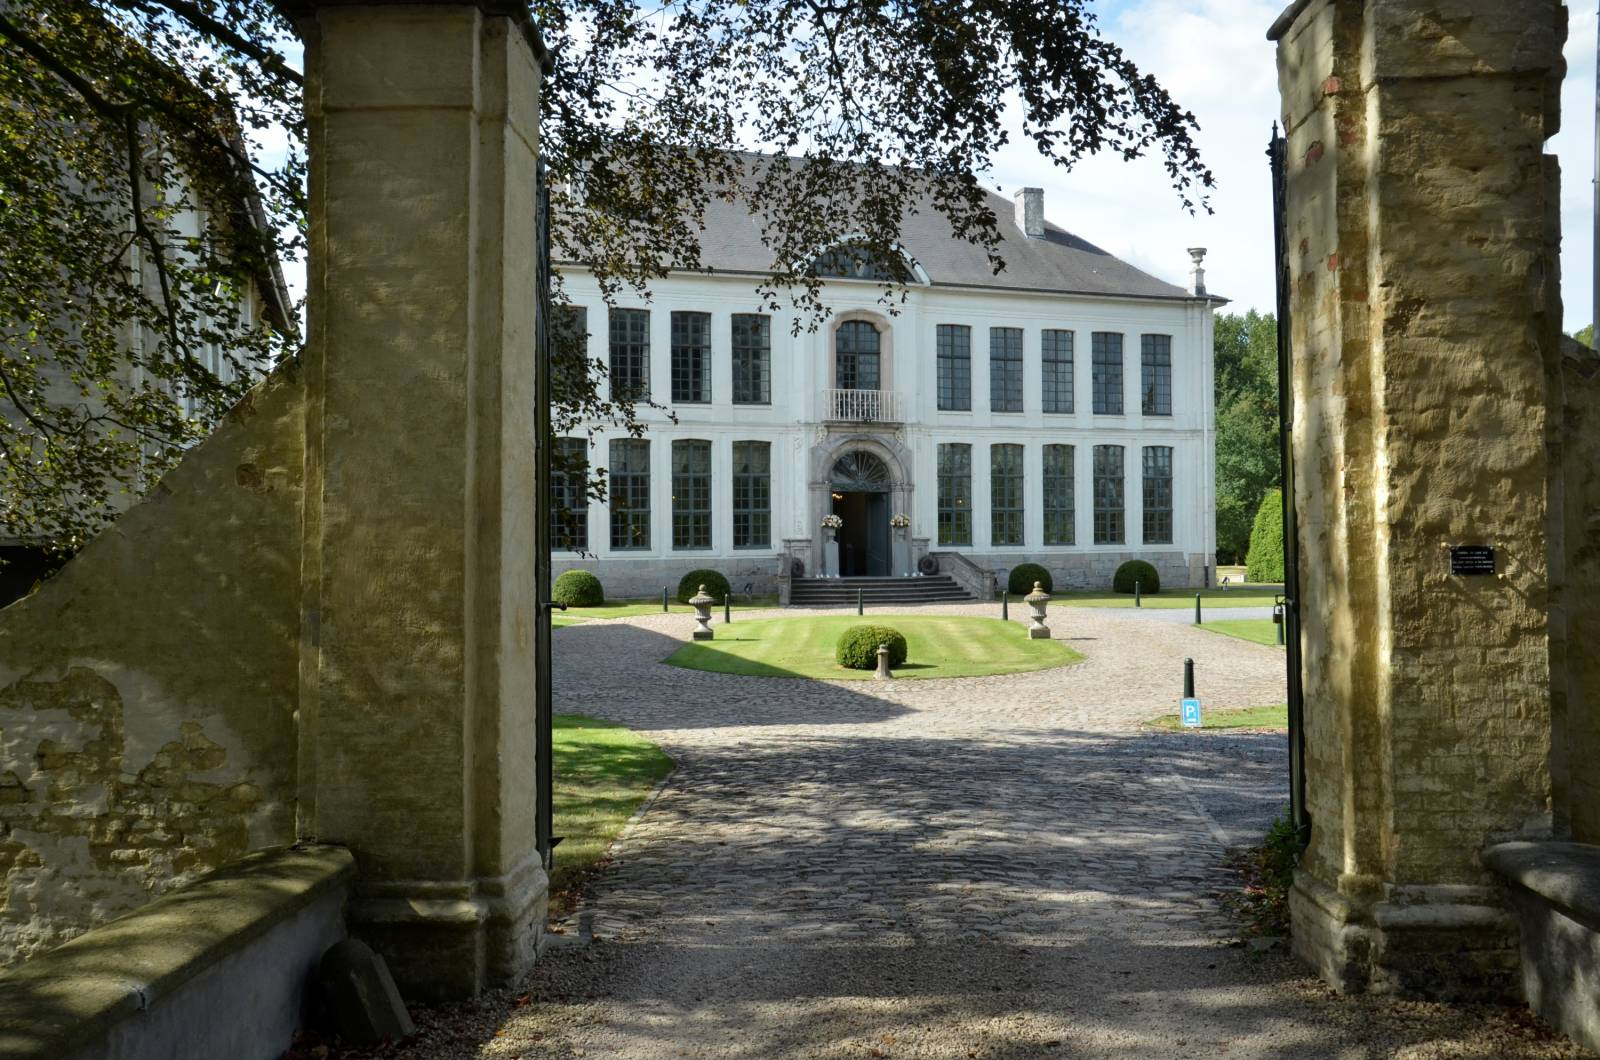 House of Weddings Kasteel Te Lake Feestzaal Oost-Vlaanderen Catering Ceremonie Zulte Gent (30)